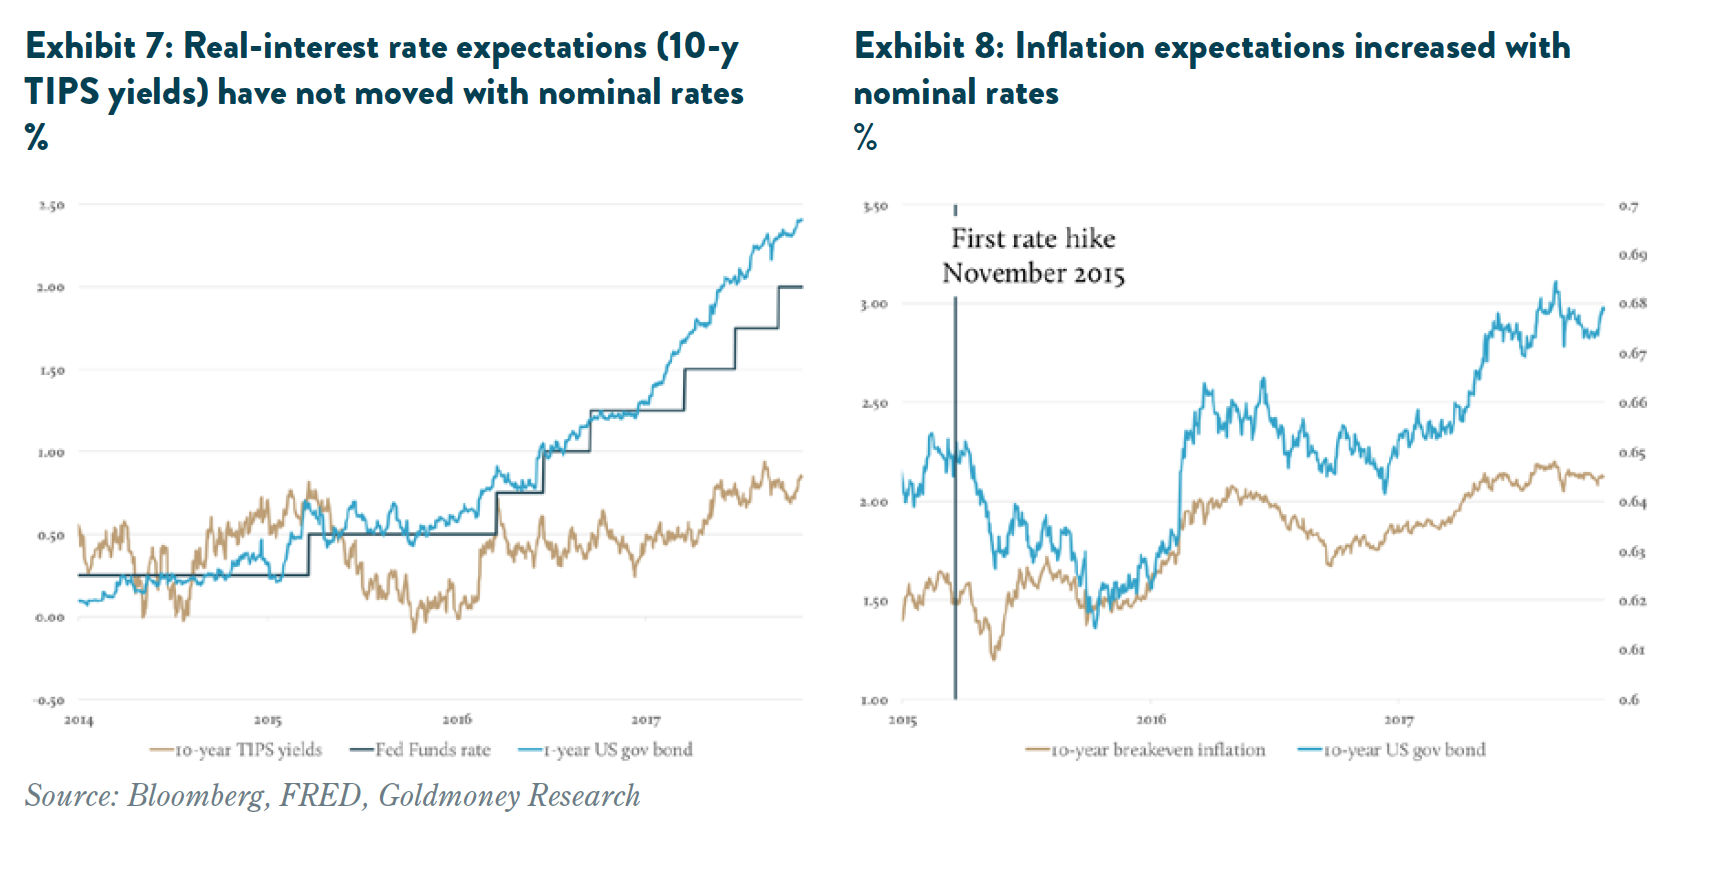 Real-interest rate expectations (10-y TIPS yields)